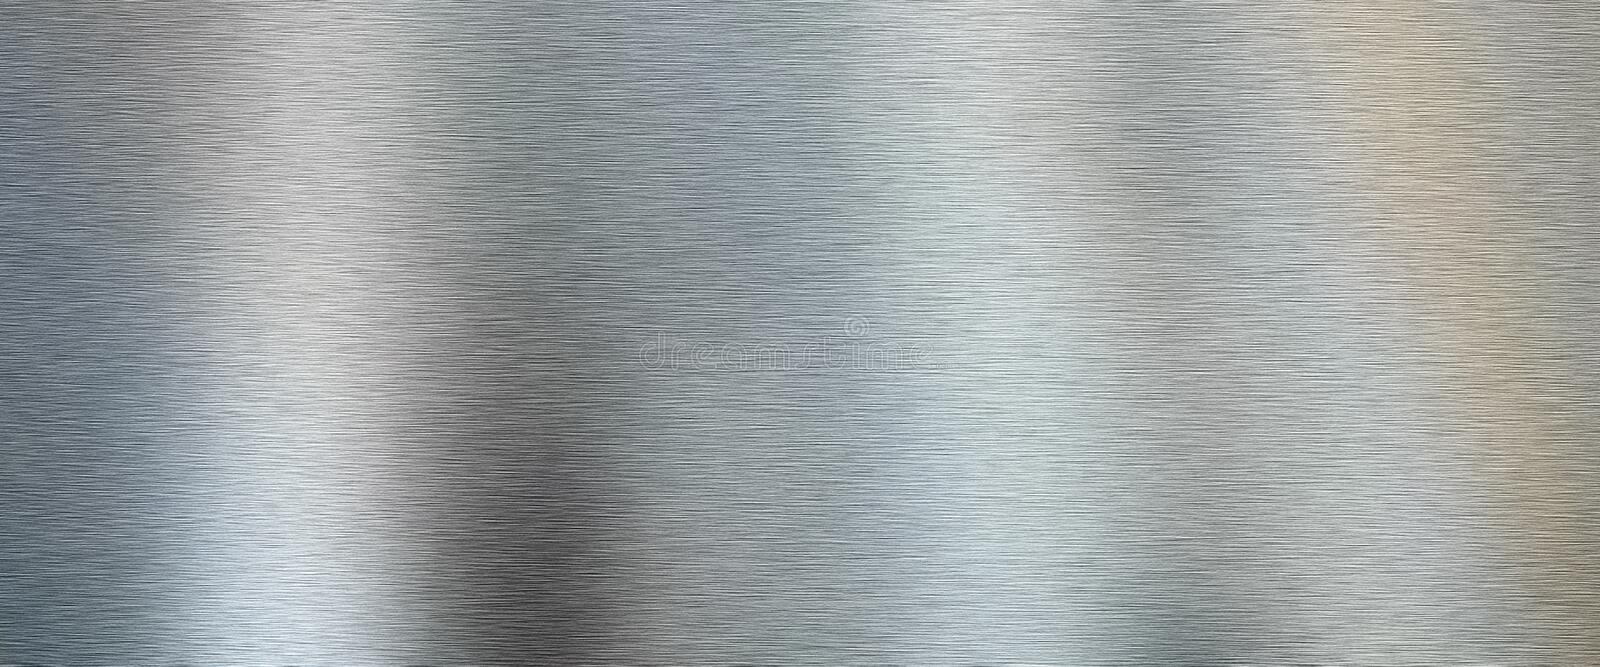 Brushed Metal texture background royalty free stock photos